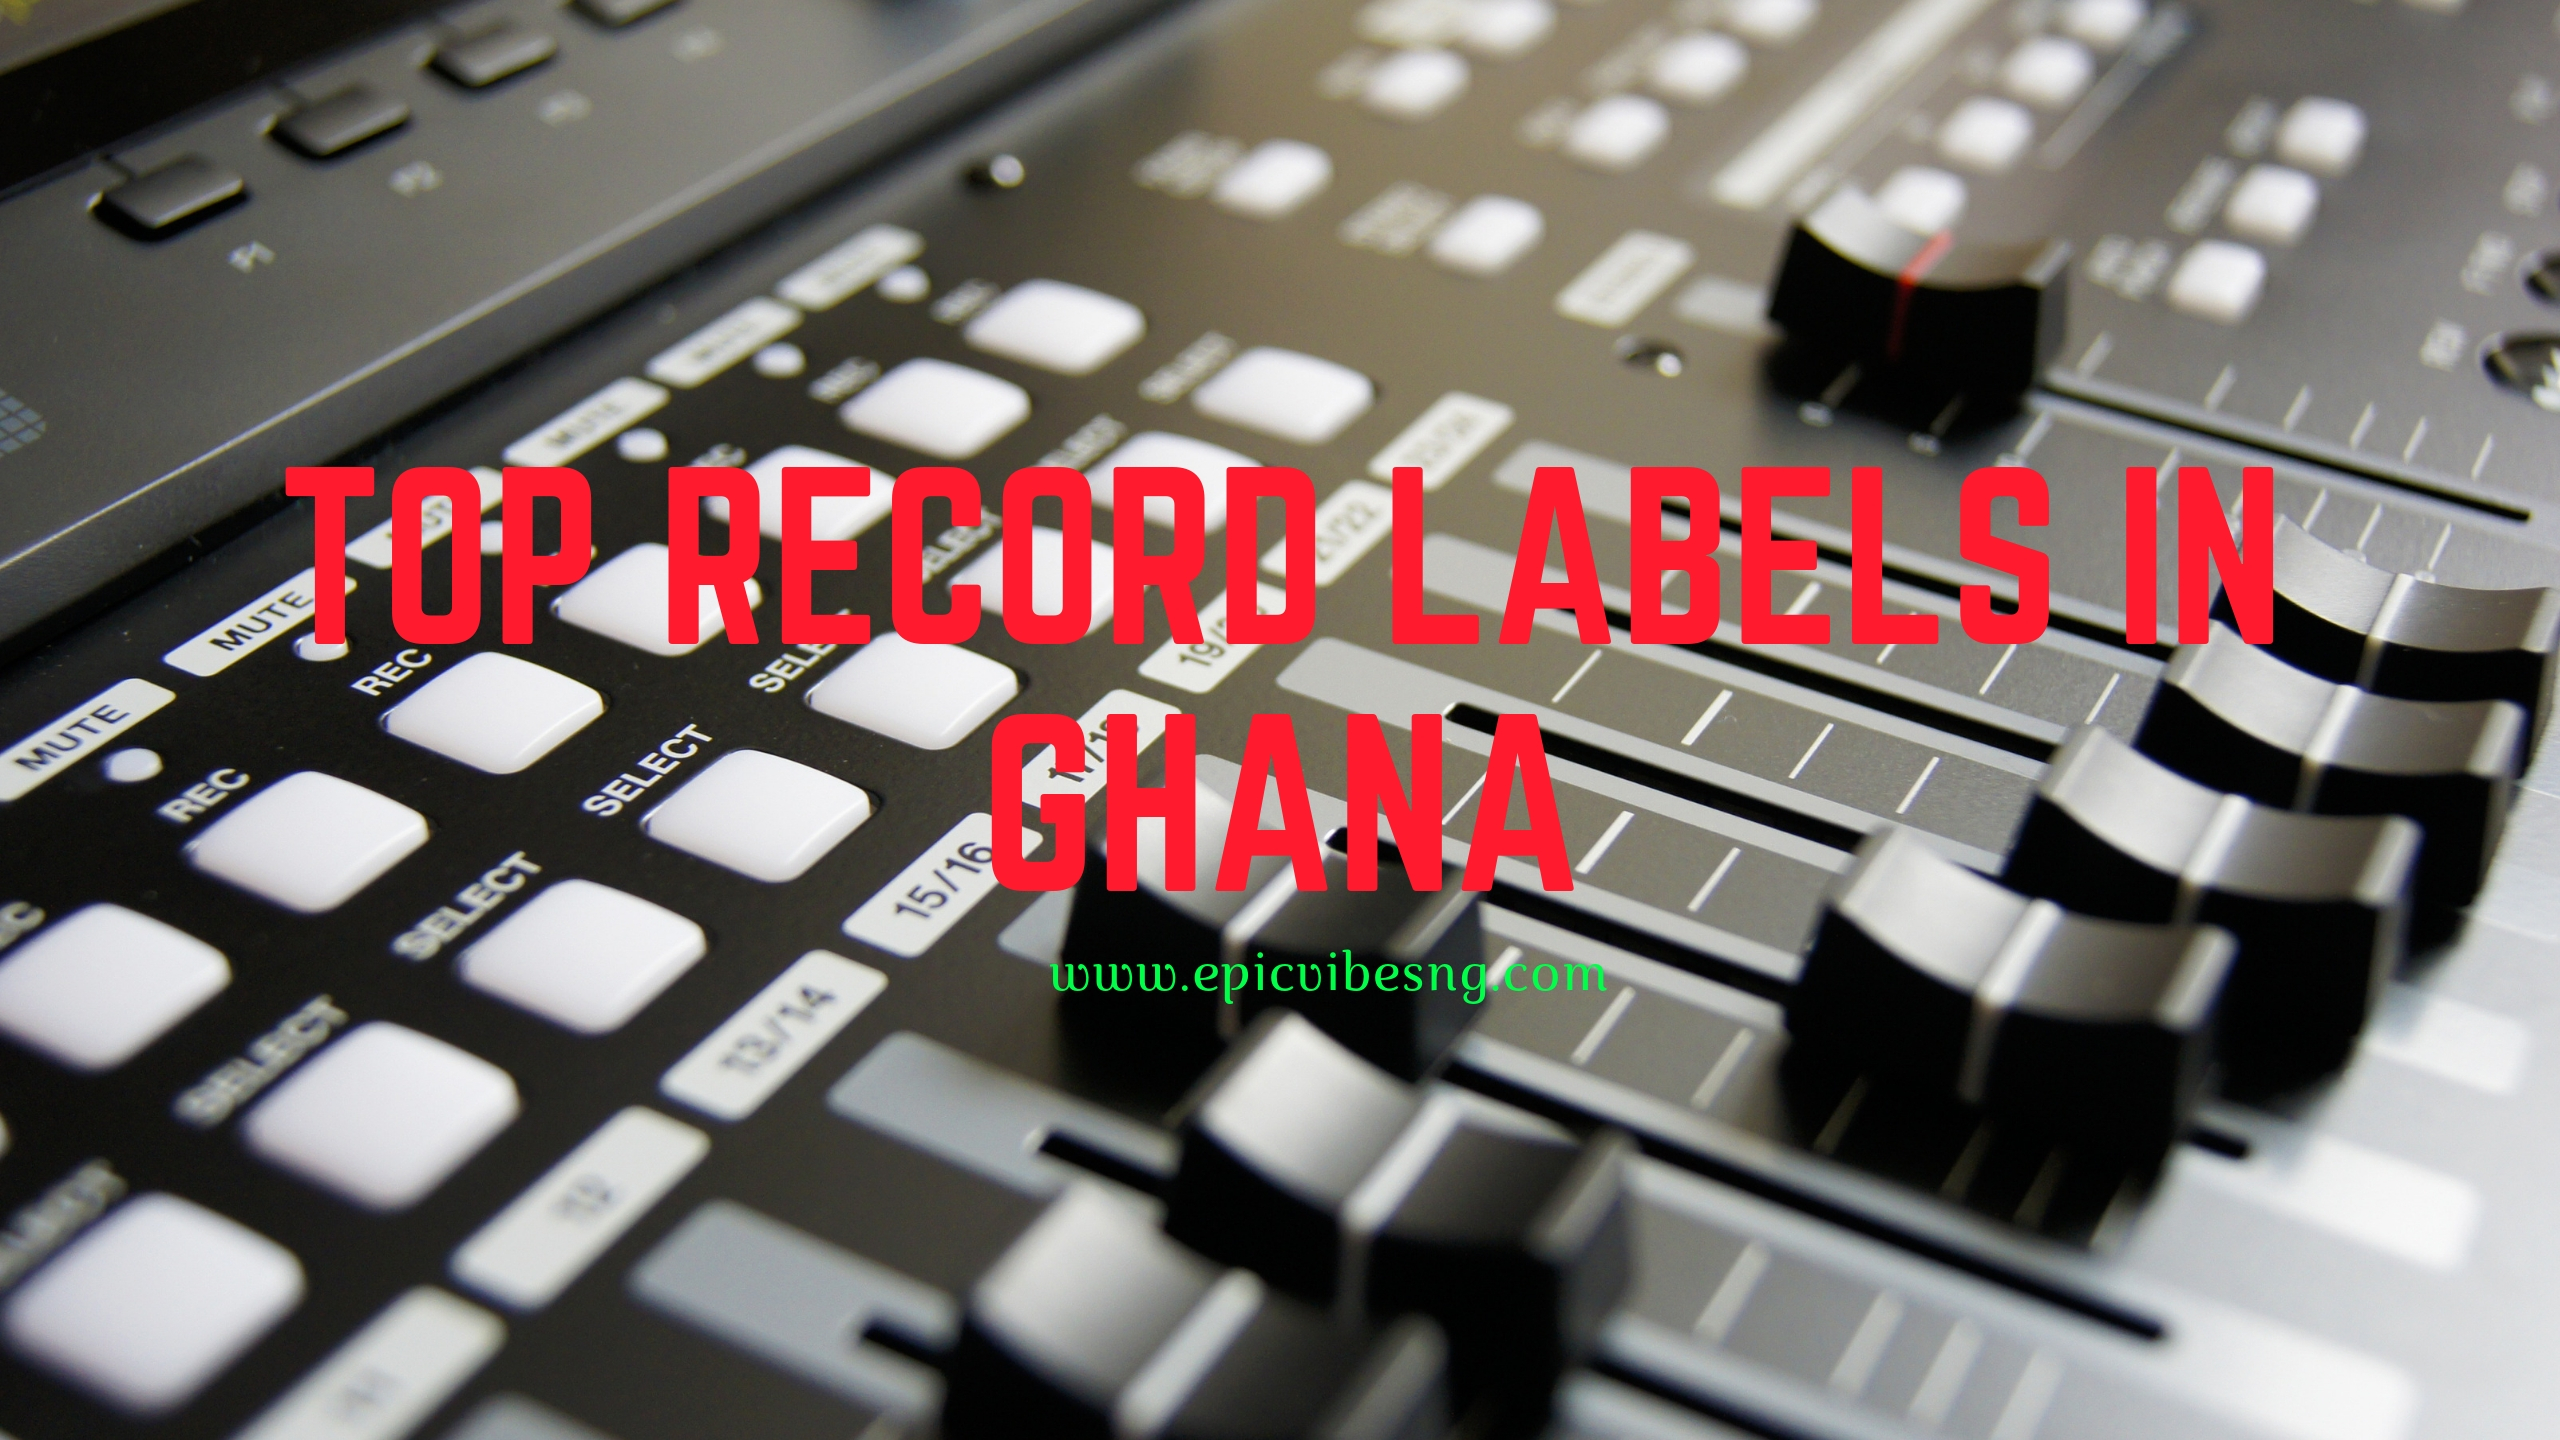 TO RECORD LABELS IN GHANA